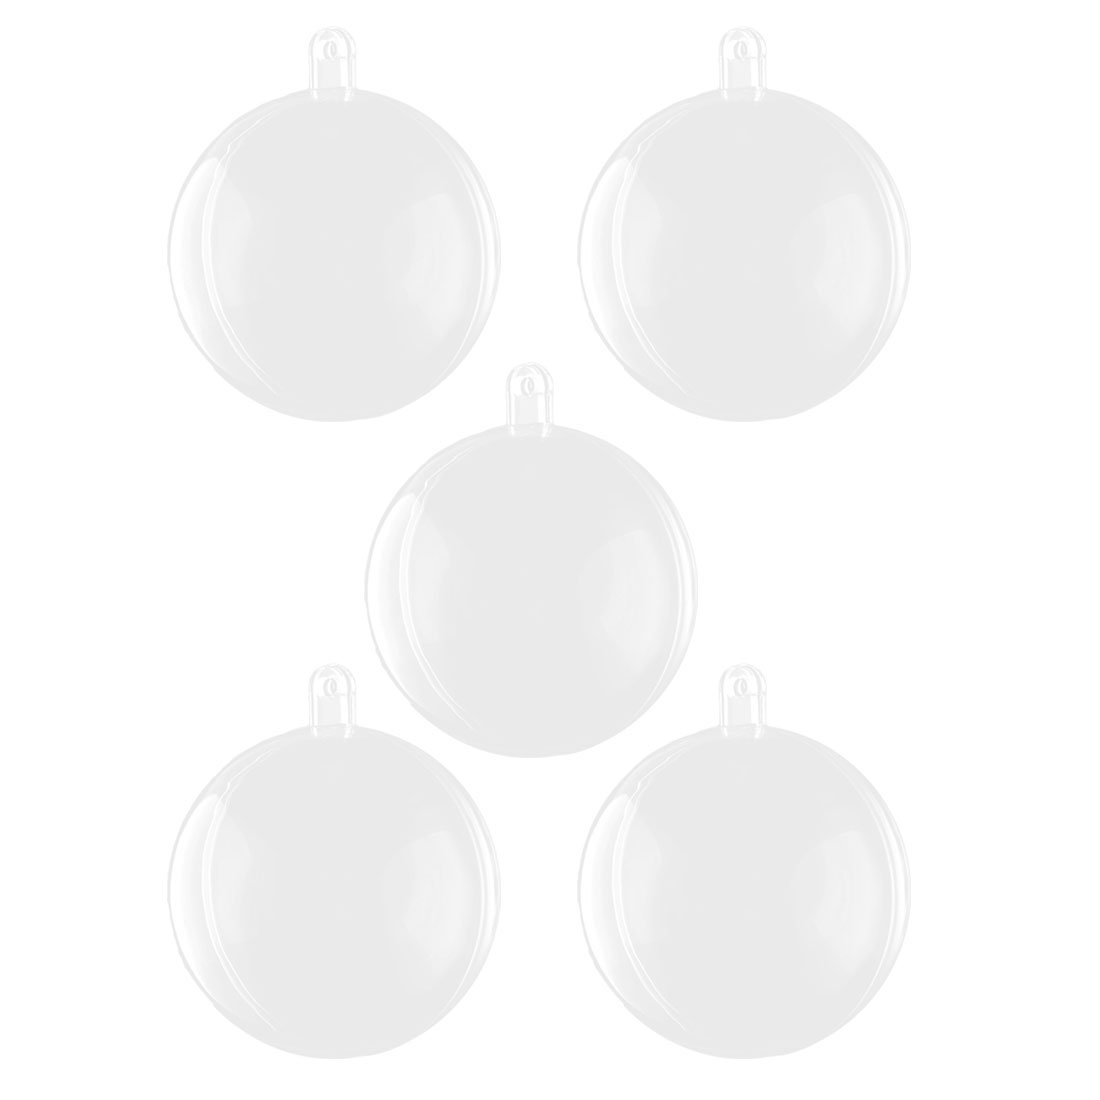 Home Plastic Round Shaped Christmas Transparent Ball DIY Craft Present Bauble Clear 5pcs